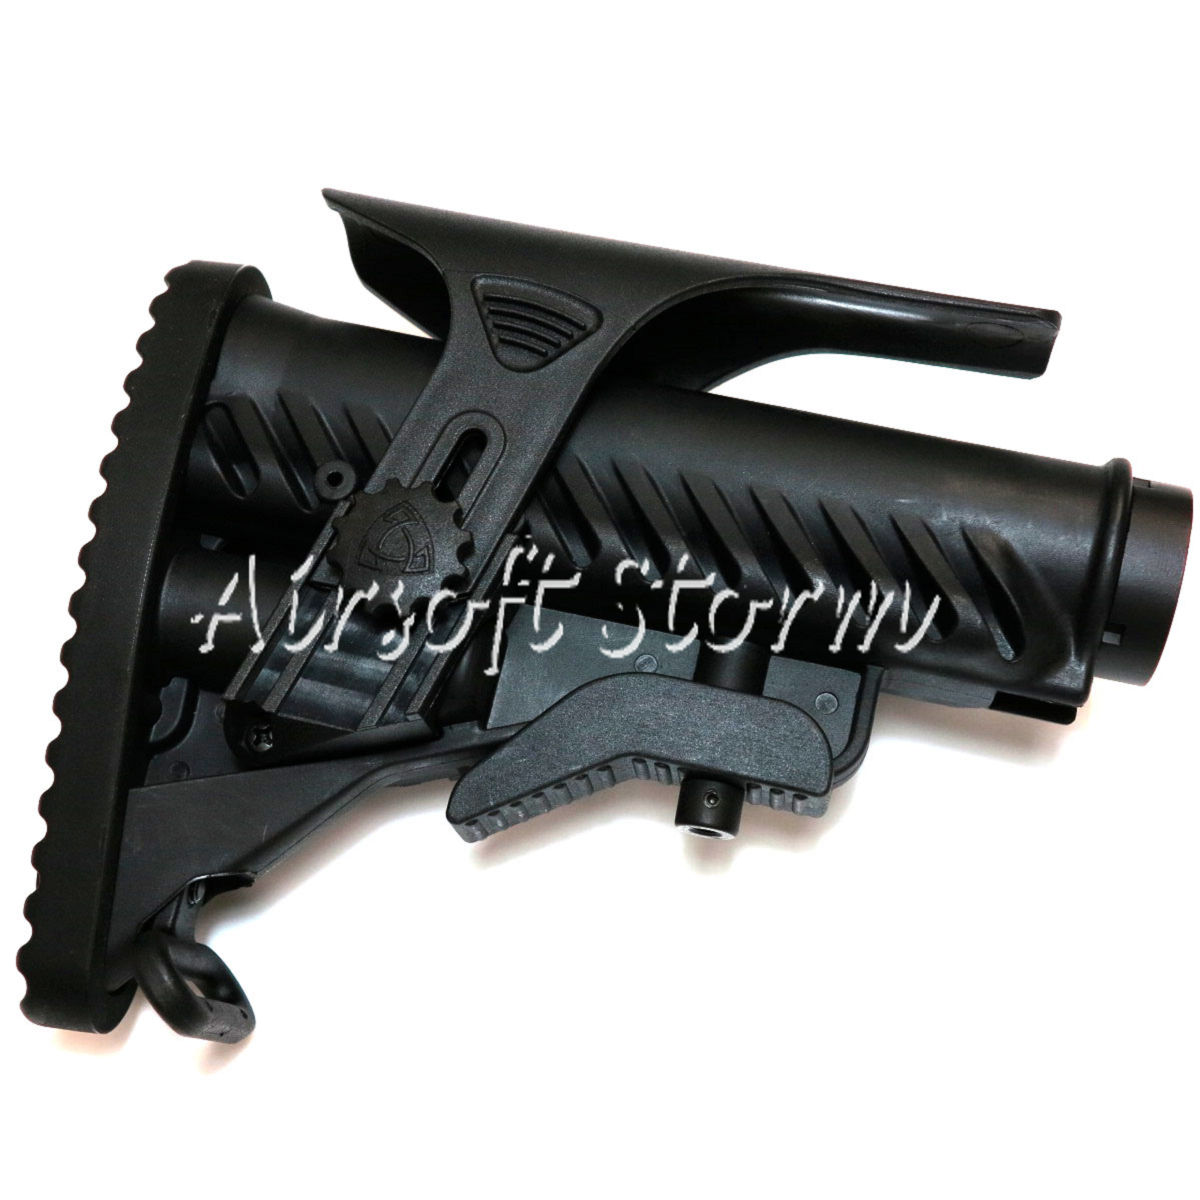 Airsoft Tactical Gear APS M4A64 Shark Style M4 Stock with Cheek Piece Set Black